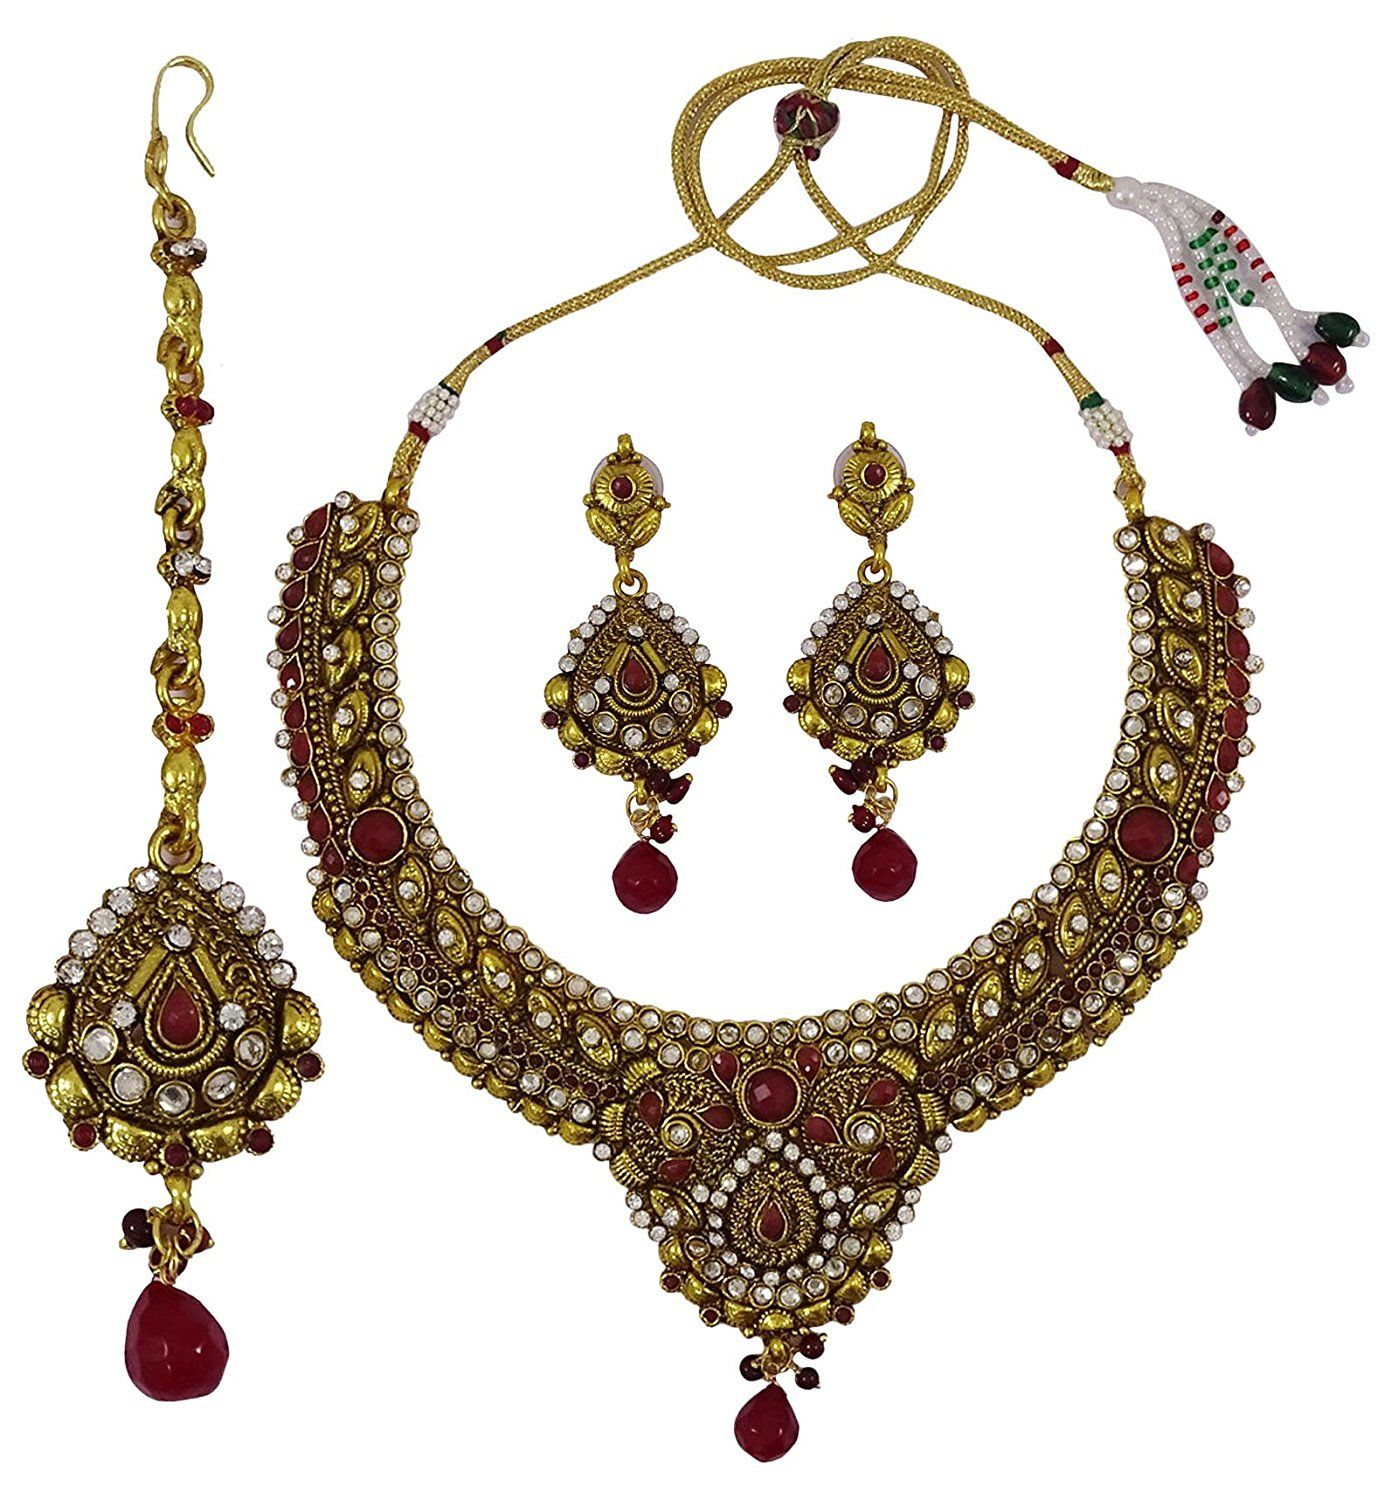 Matra pcs goldtone cz stone necklace set traditional indian bridal